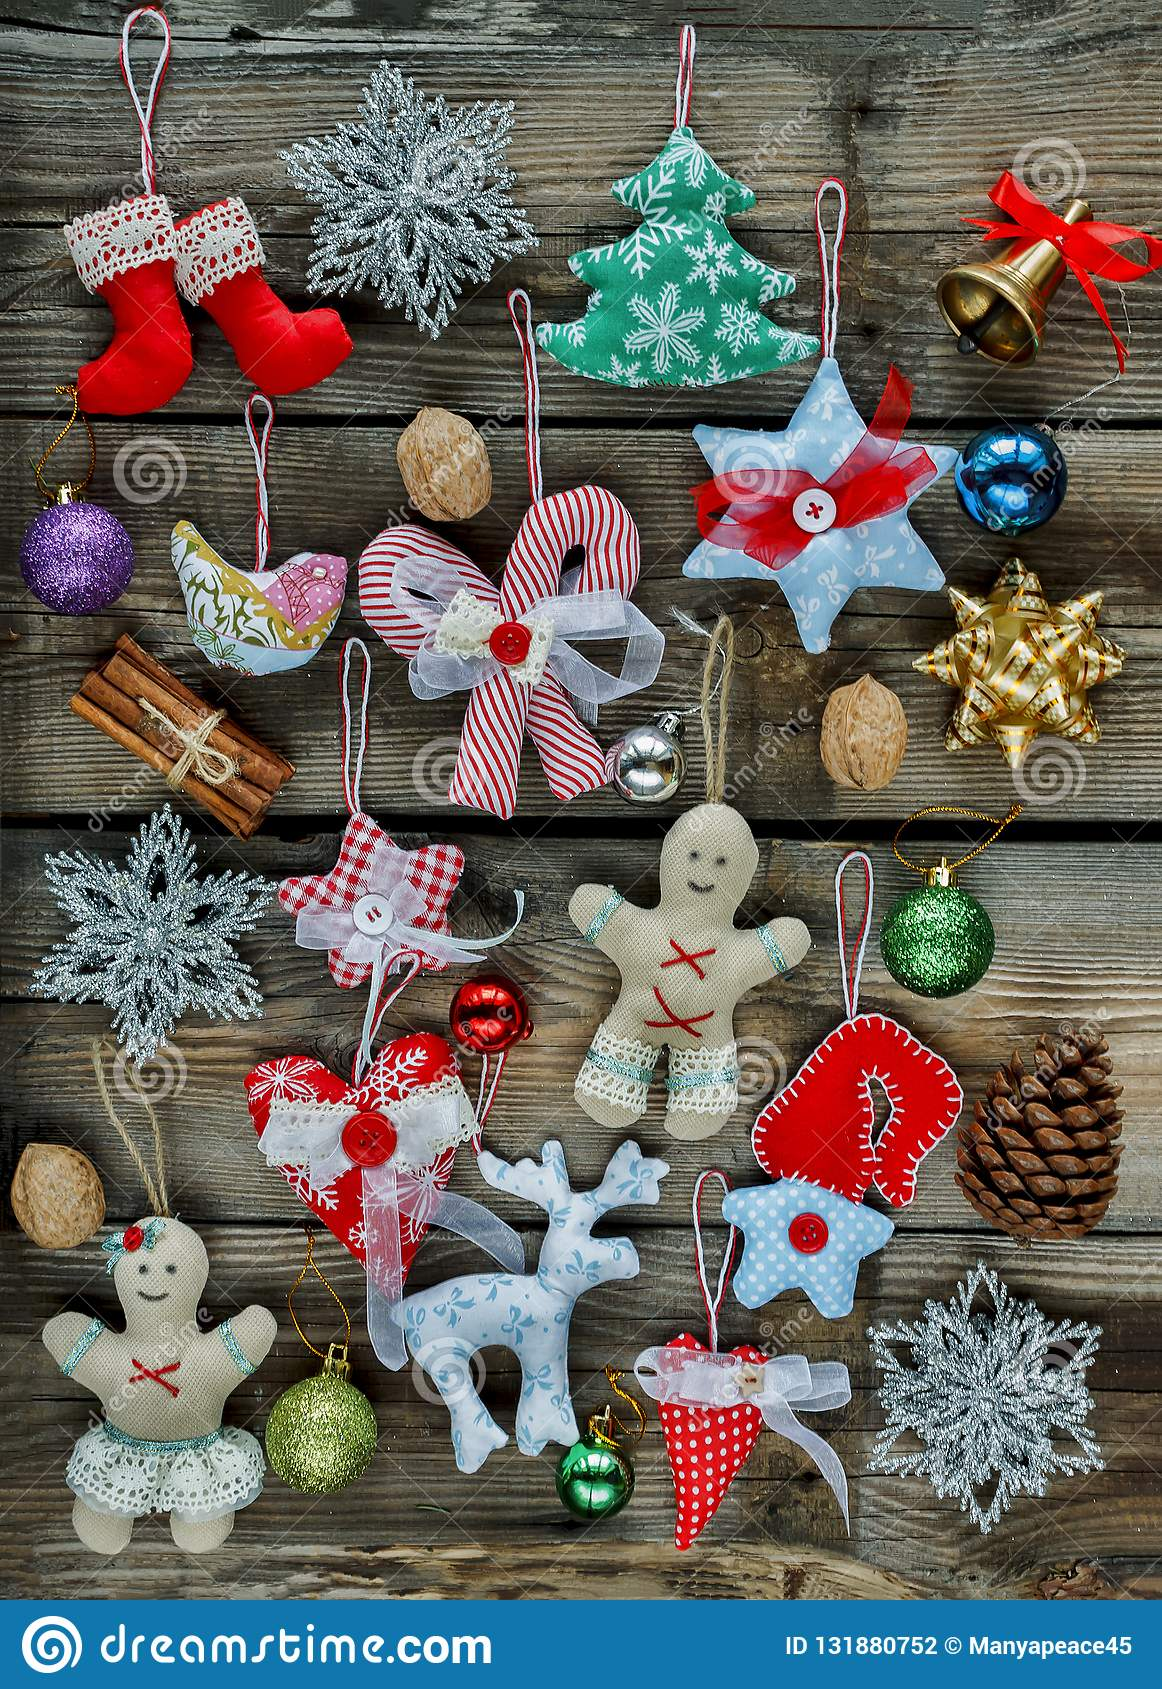 Christmas Tree Decorations 2019.Homemade Christmas Toys Christmas Tree Decorations 2019